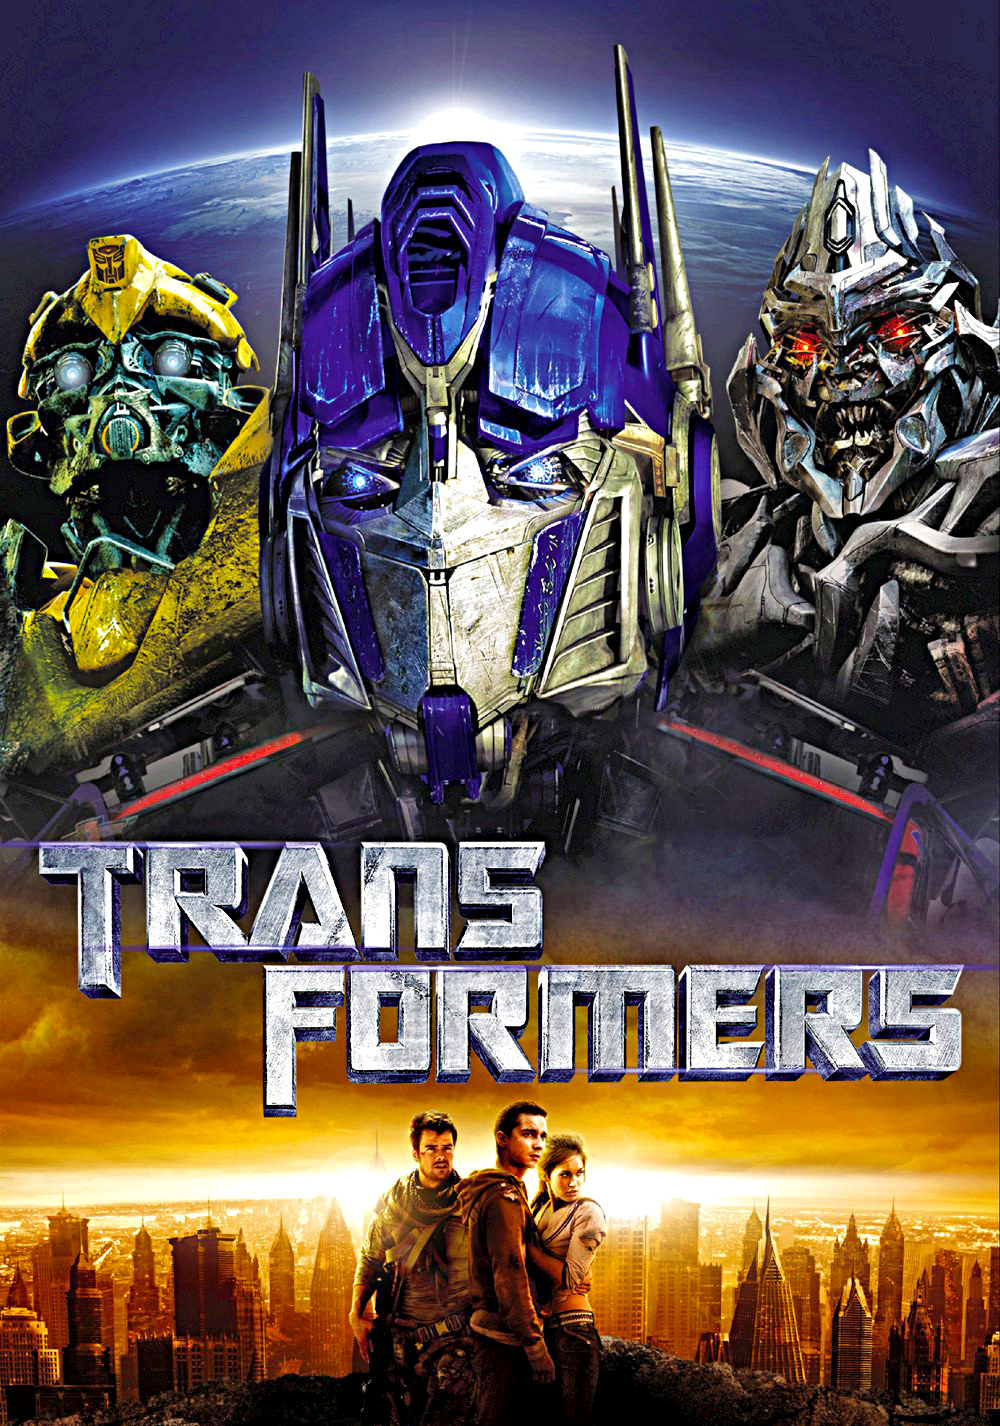 TRANSFORMERS 1 (2007) MOVIE TAMIL DUBBED HD